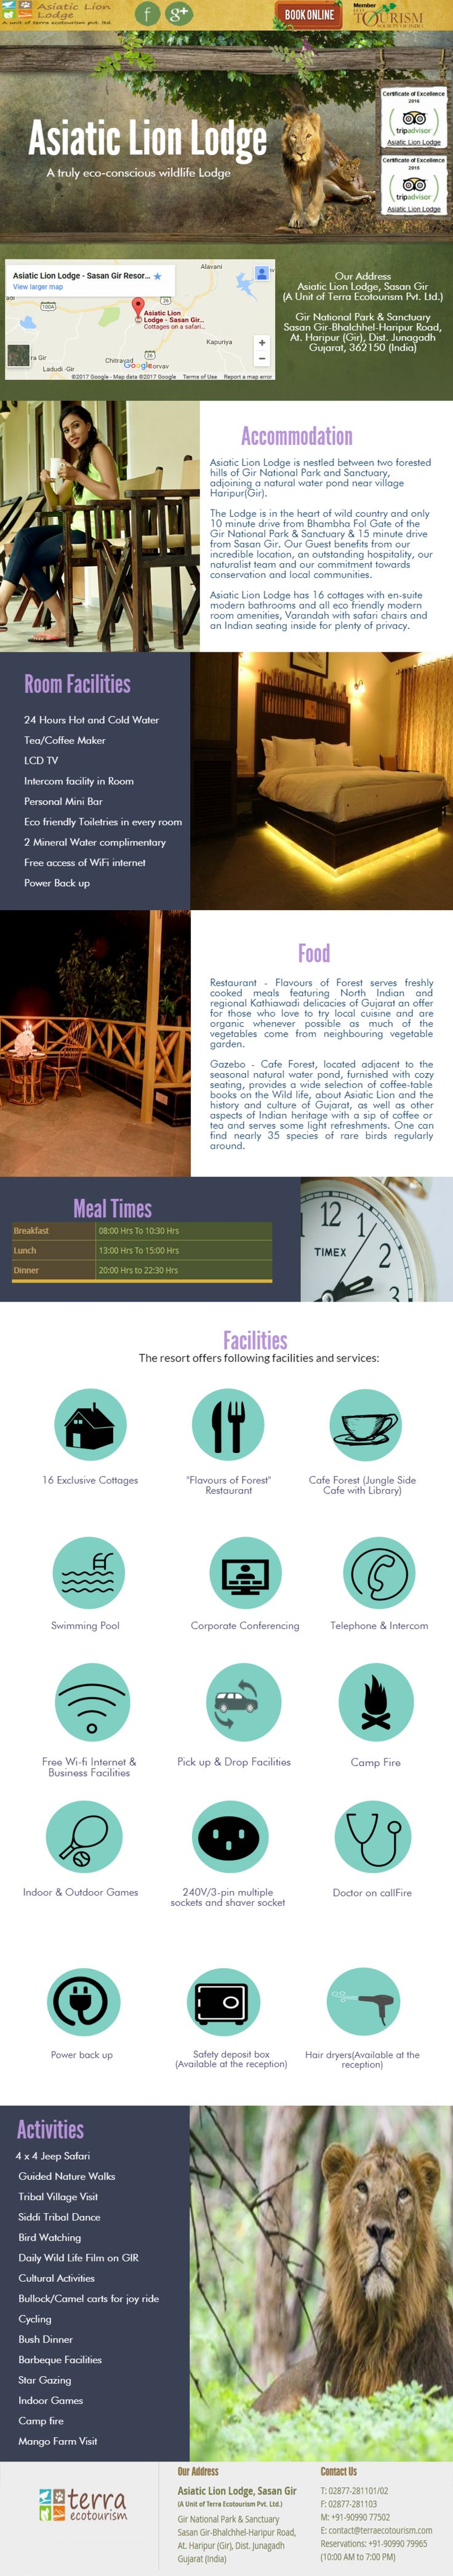 Accommodations in Gir National Park | Asiatic Lion Lodge Infographic